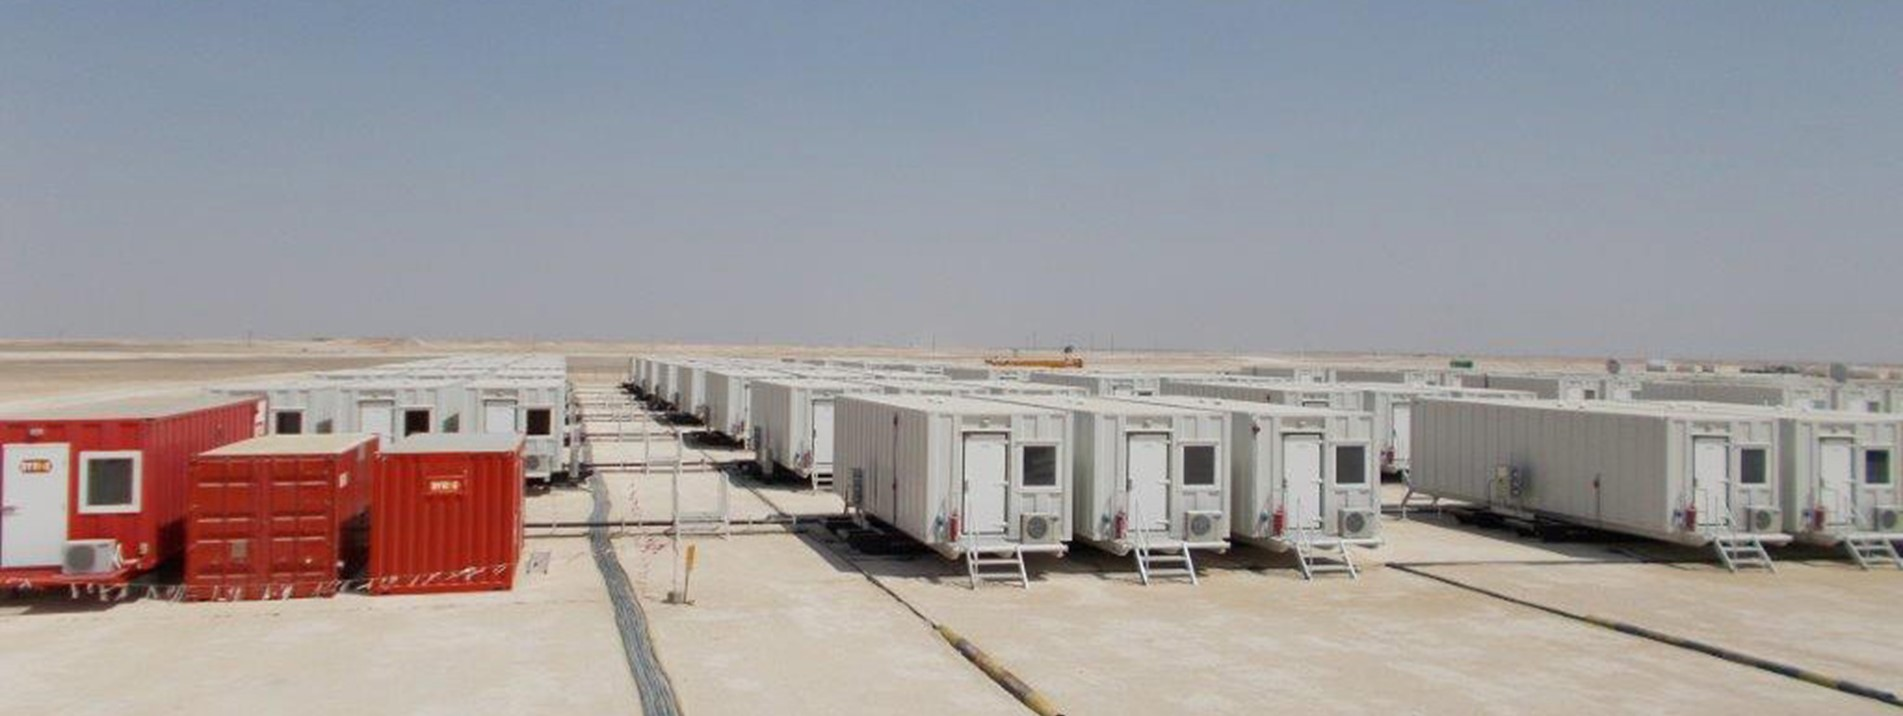 Oil & Gas Accommodation | Oilfield Camps | Spacemaker